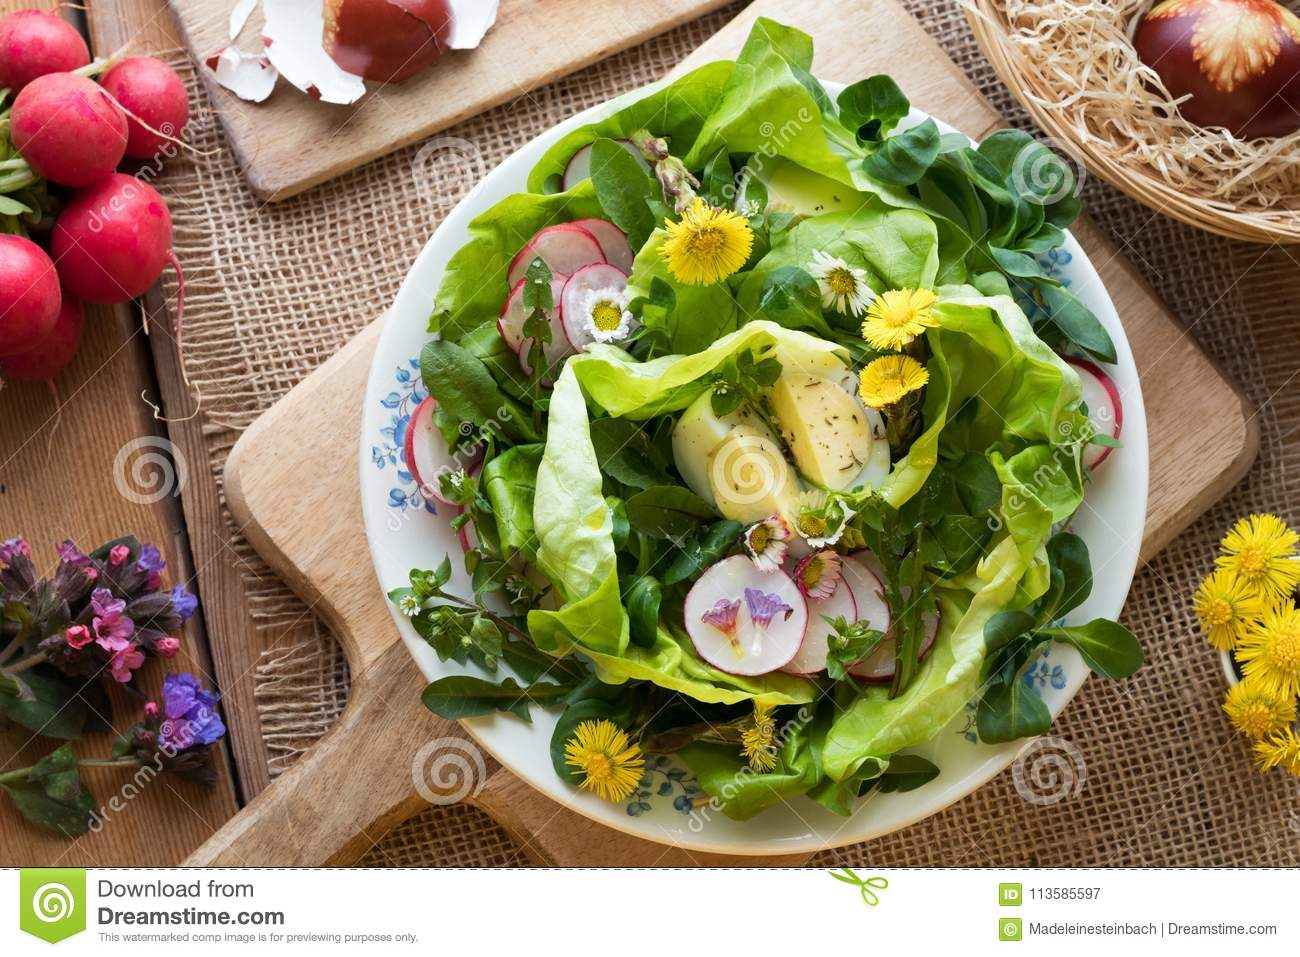 Salad with eggs and wild edible plants